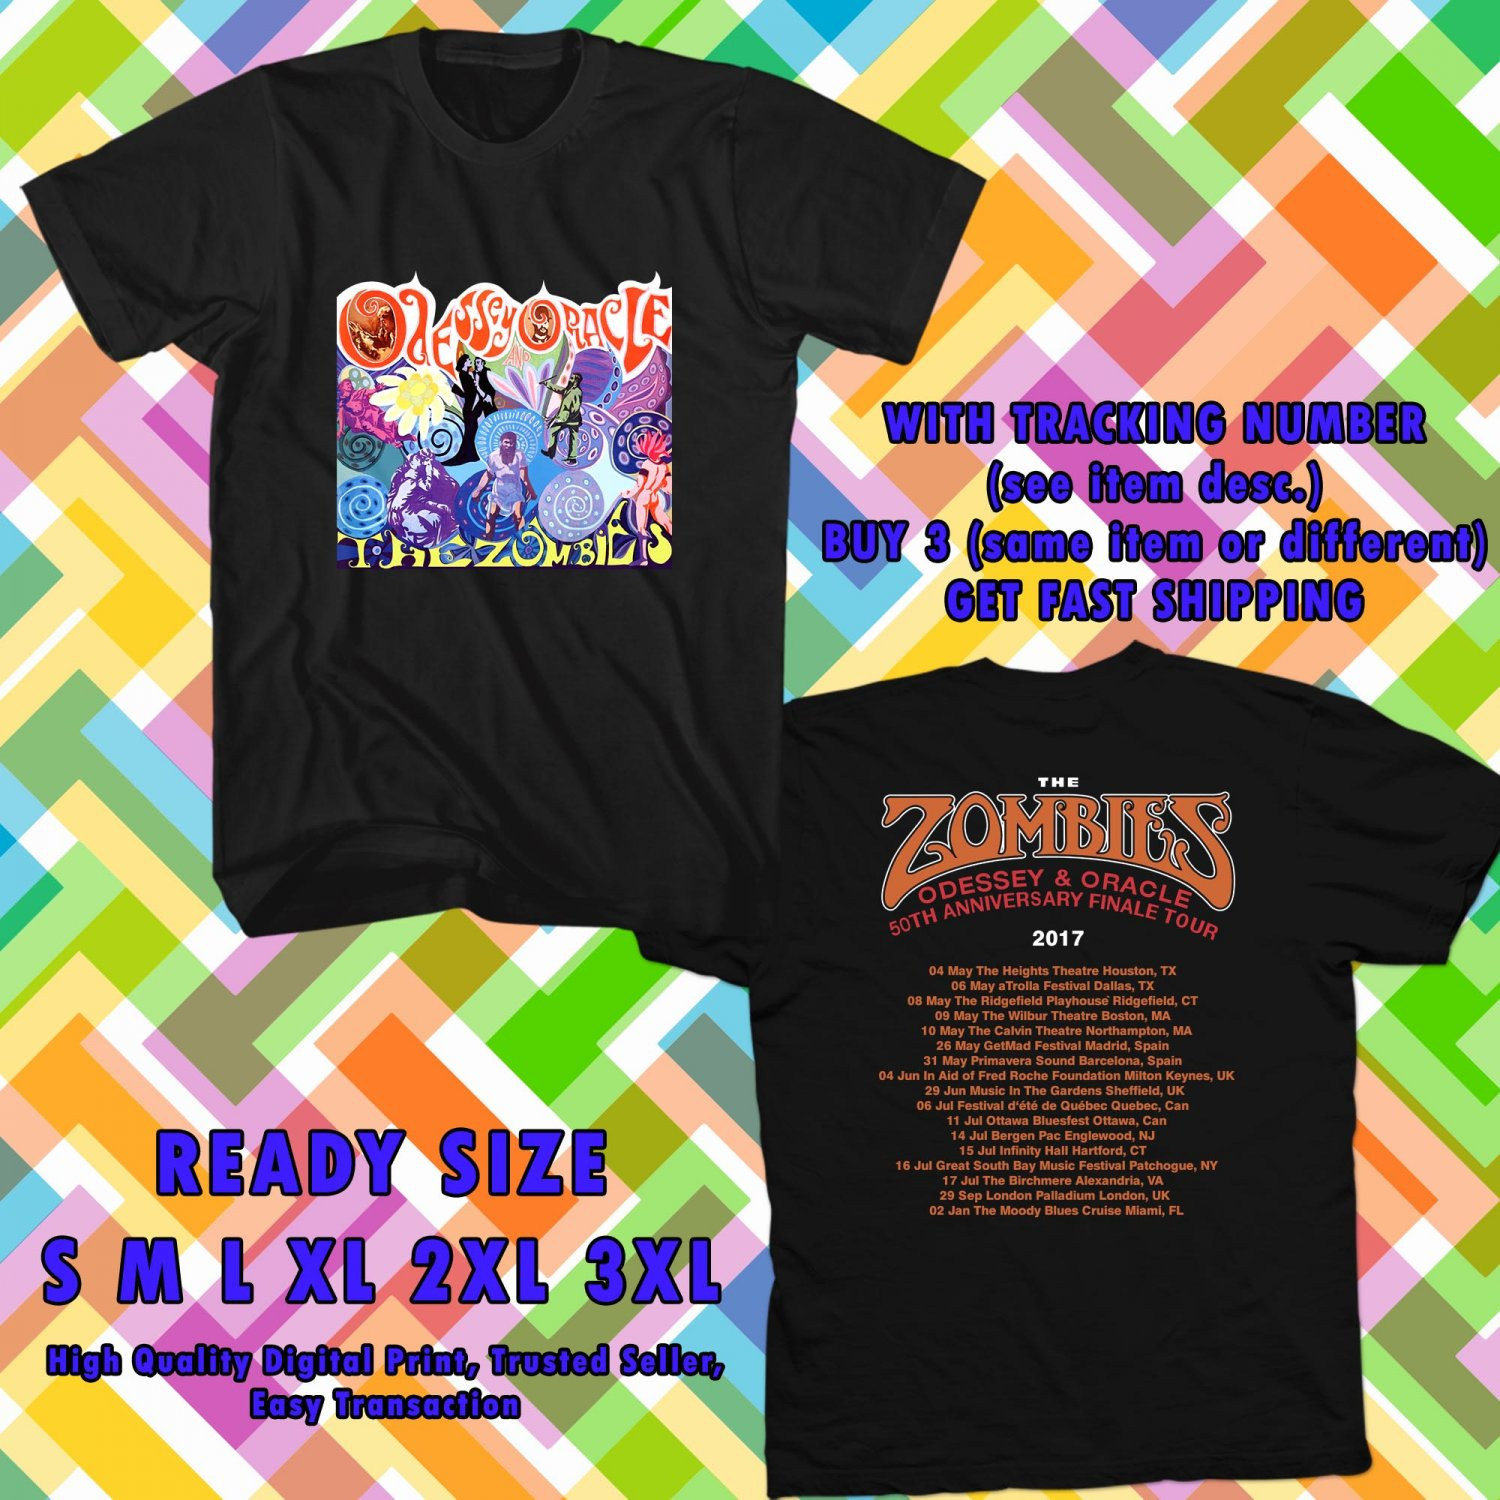 HITS THE ZOMBIES ODESSEY & ORACLE 50TH ANNIV TOUR 2017 BLACK TEE 2SIDE ASTR